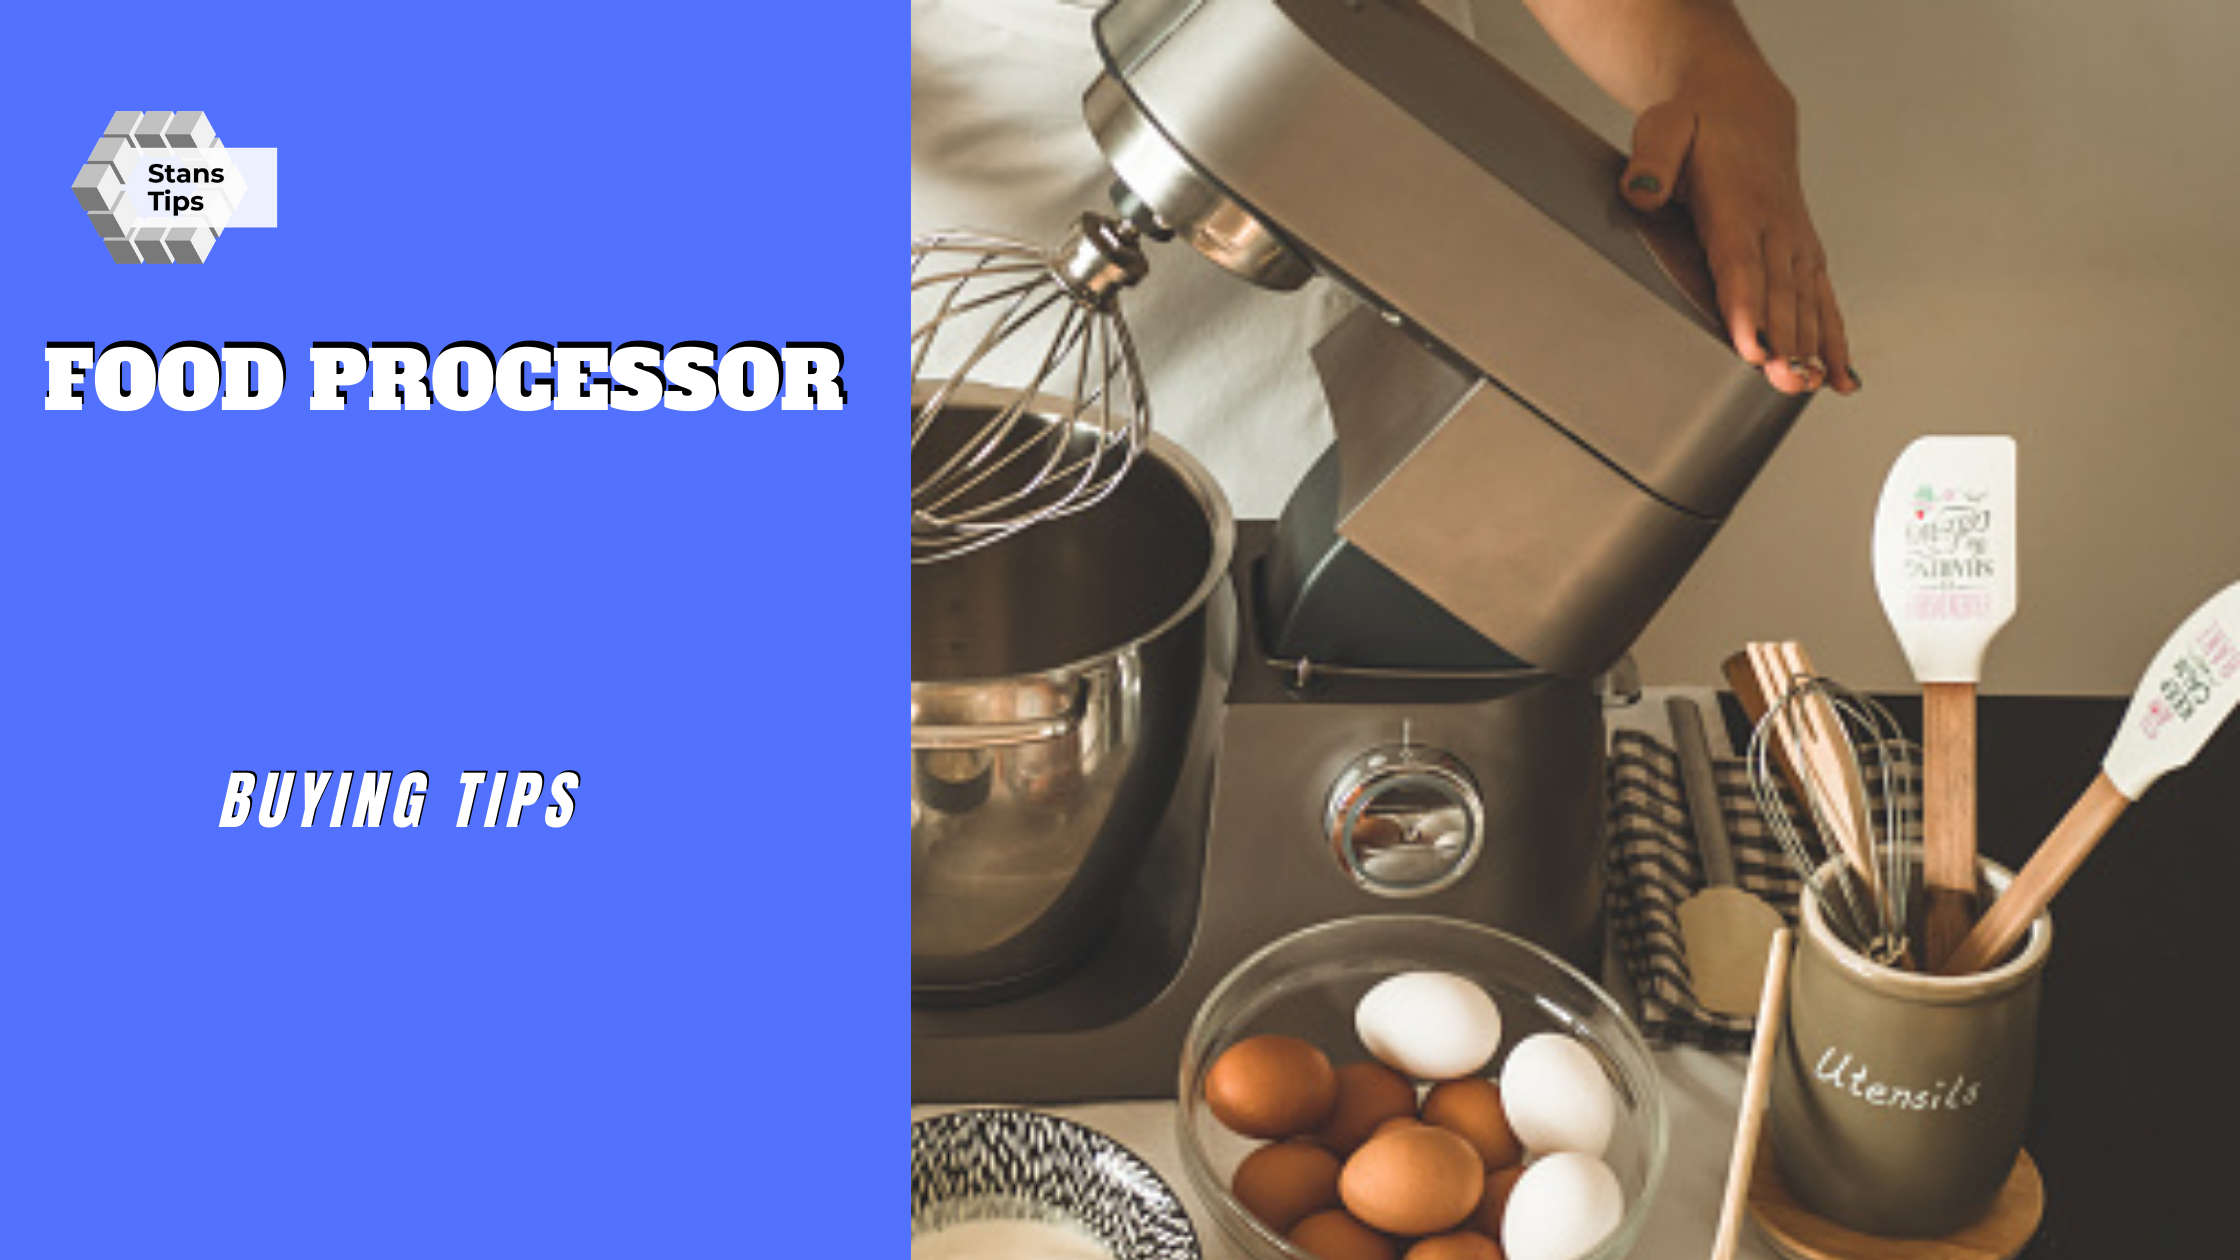 Food processor buying tips